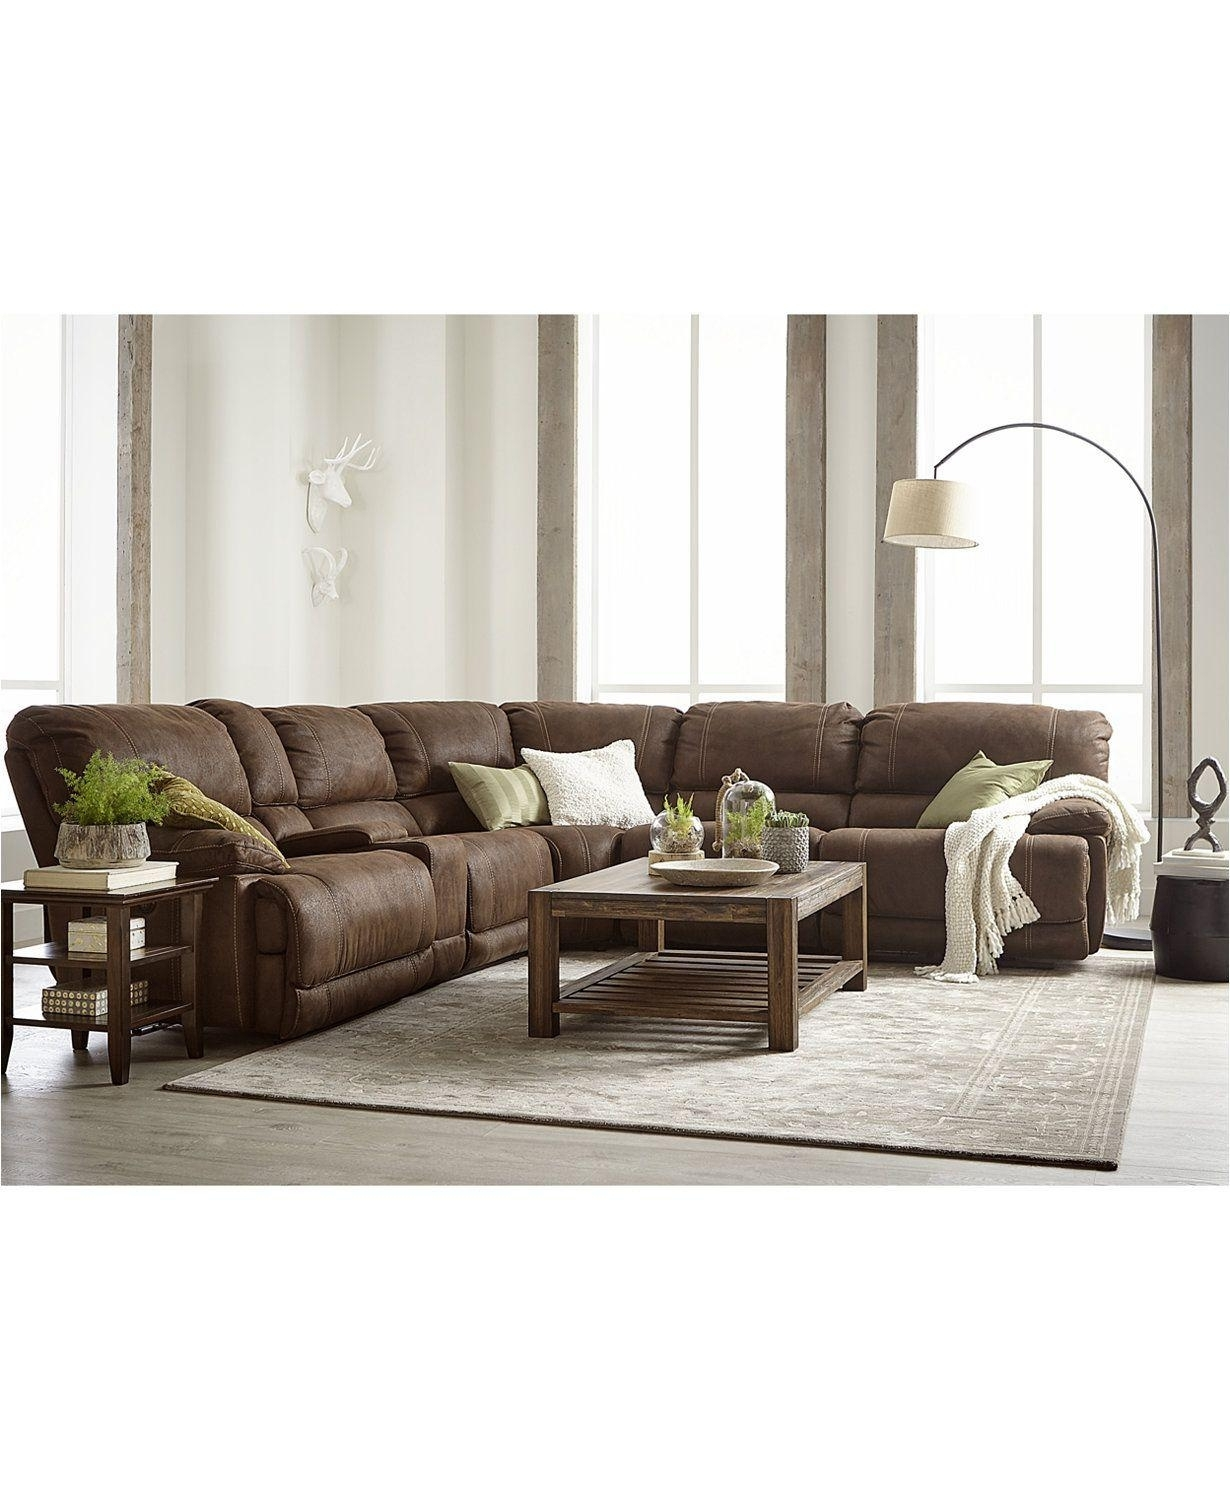 Fabric Sectional Sofa With Power Recliner | Baci Living Room For Declan 3 Piece Power Reclining Sectionals With Right Facing Console Loveseat (Image 8 of 25)